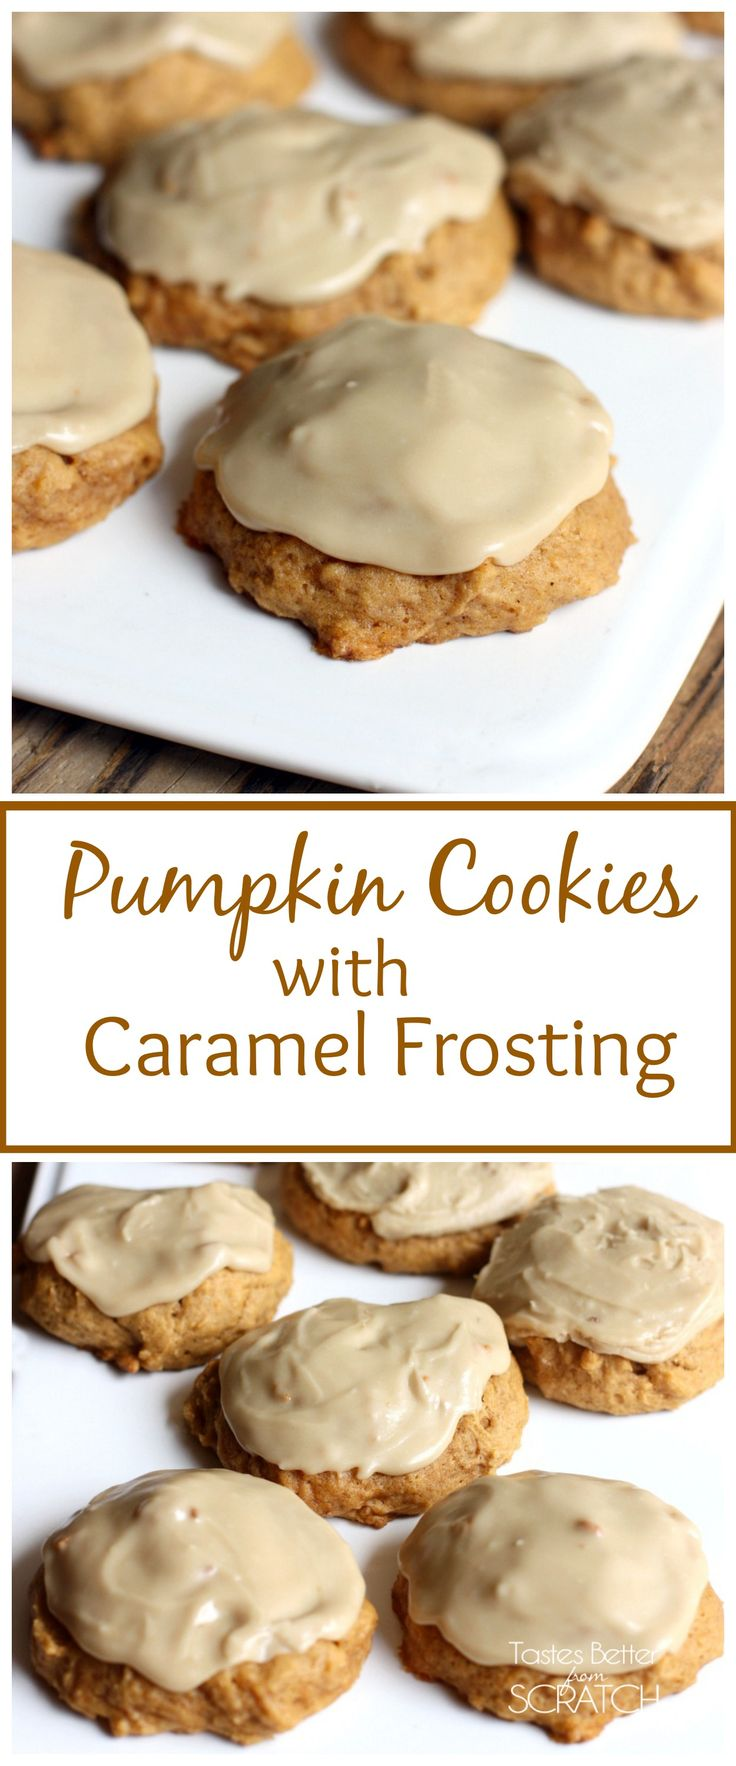 Pumpkin Cookies with Caramel Frosting - my all time FAVORITE cookies! Melt-in-your-mouth goodness!! #cookies #pumpkin #caramel